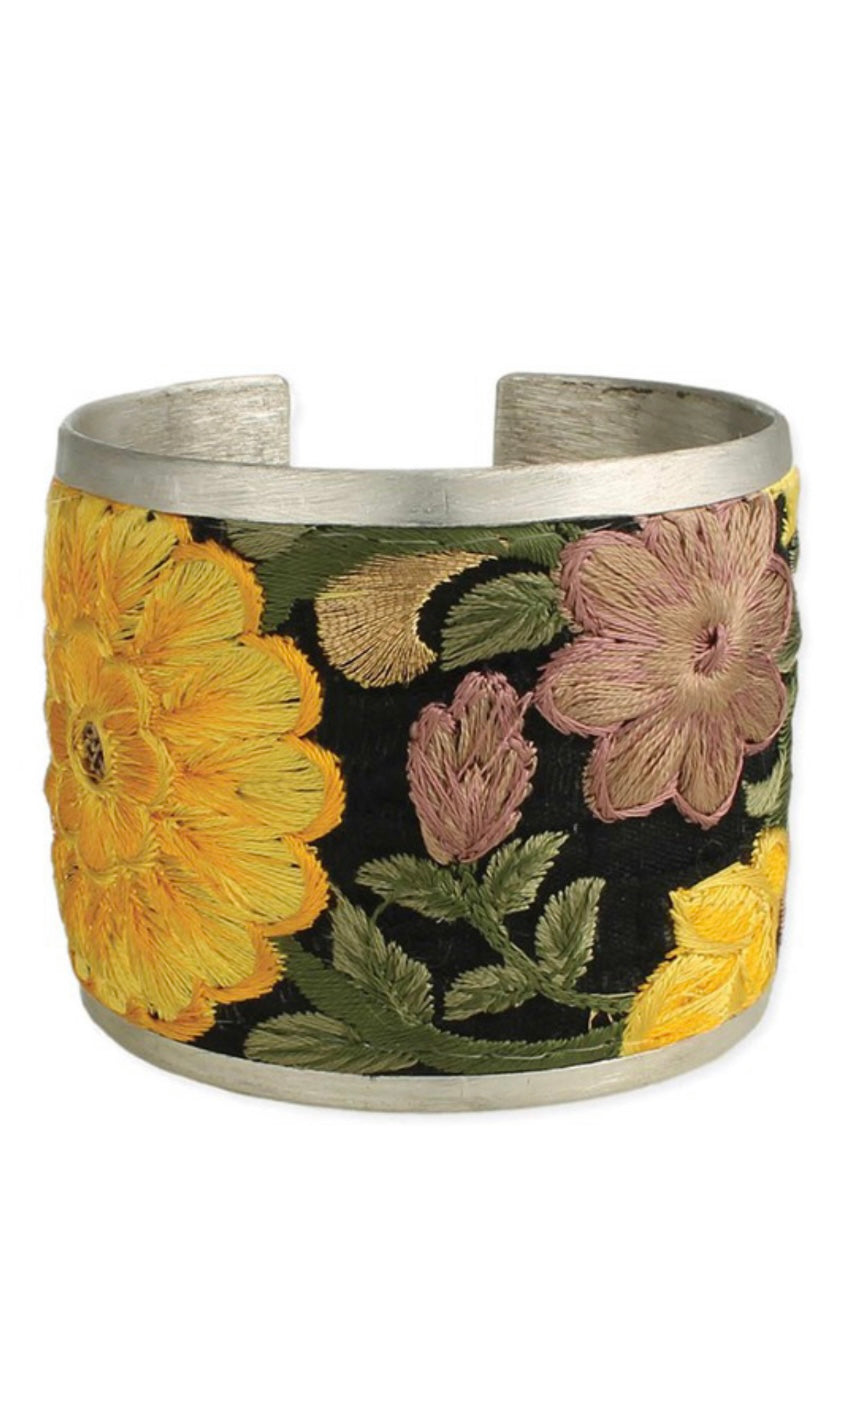 Bazaar Yellow Flower Embroidered Silver Cuff Bracelet